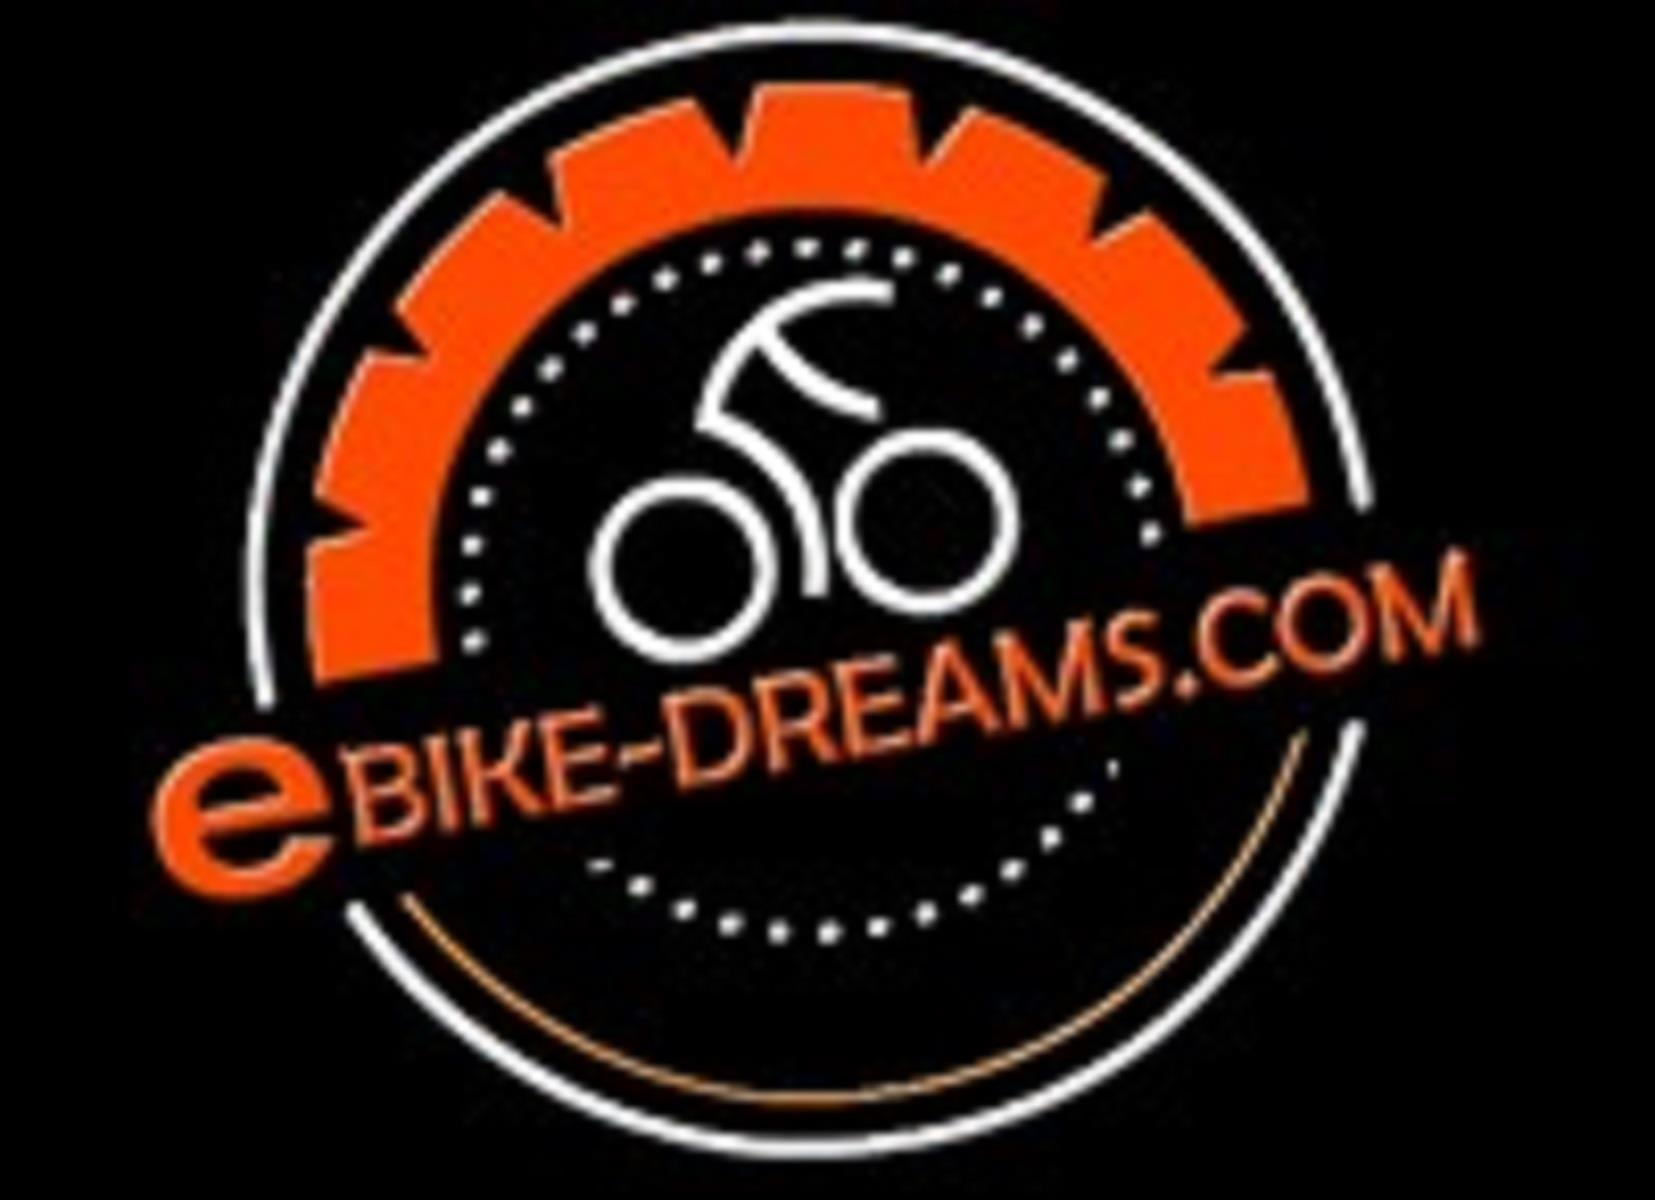 Rent a bike E-Bike-Dreams